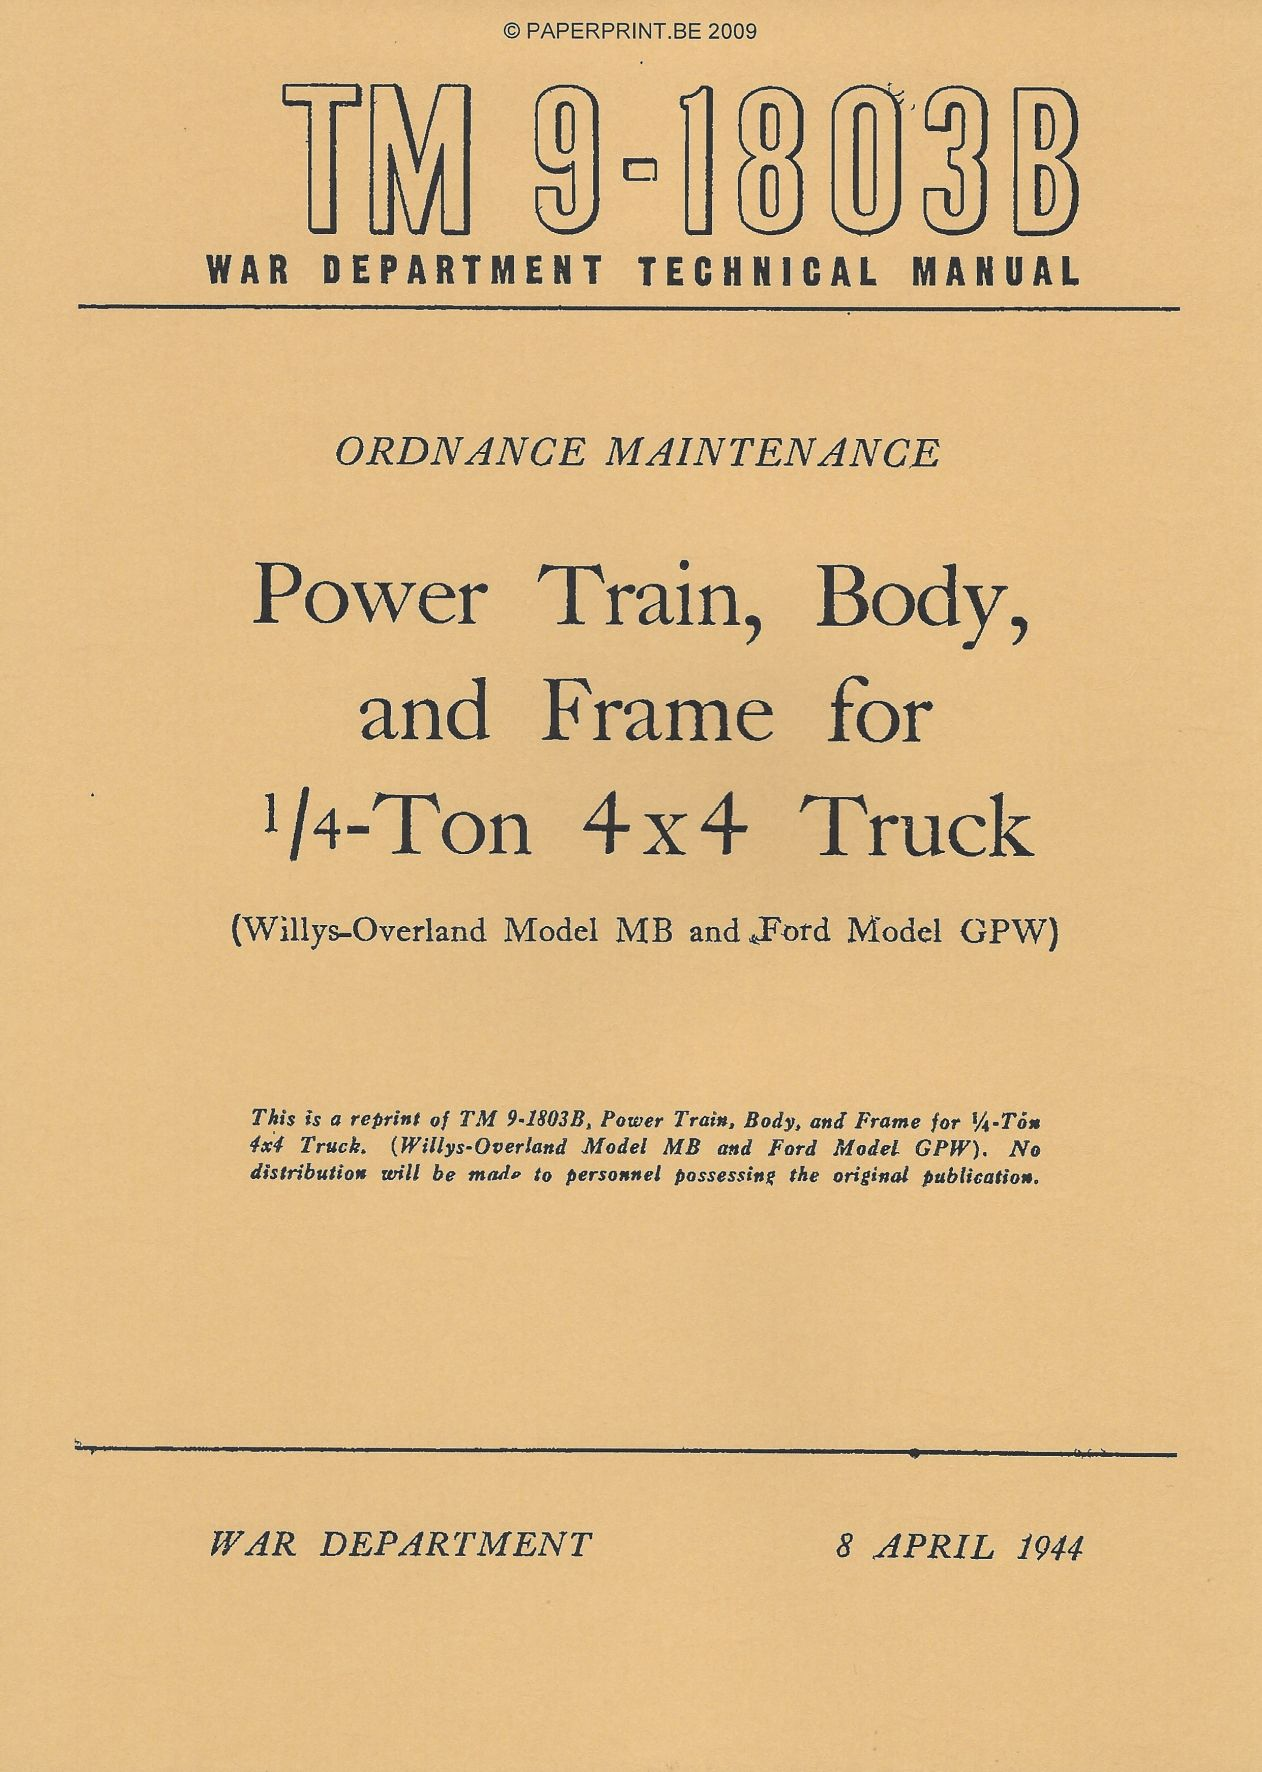 TM 9-1803B US POWER TRAIN, BODY AND FRAME FOR ¼ - TON 4x4 TRUCK